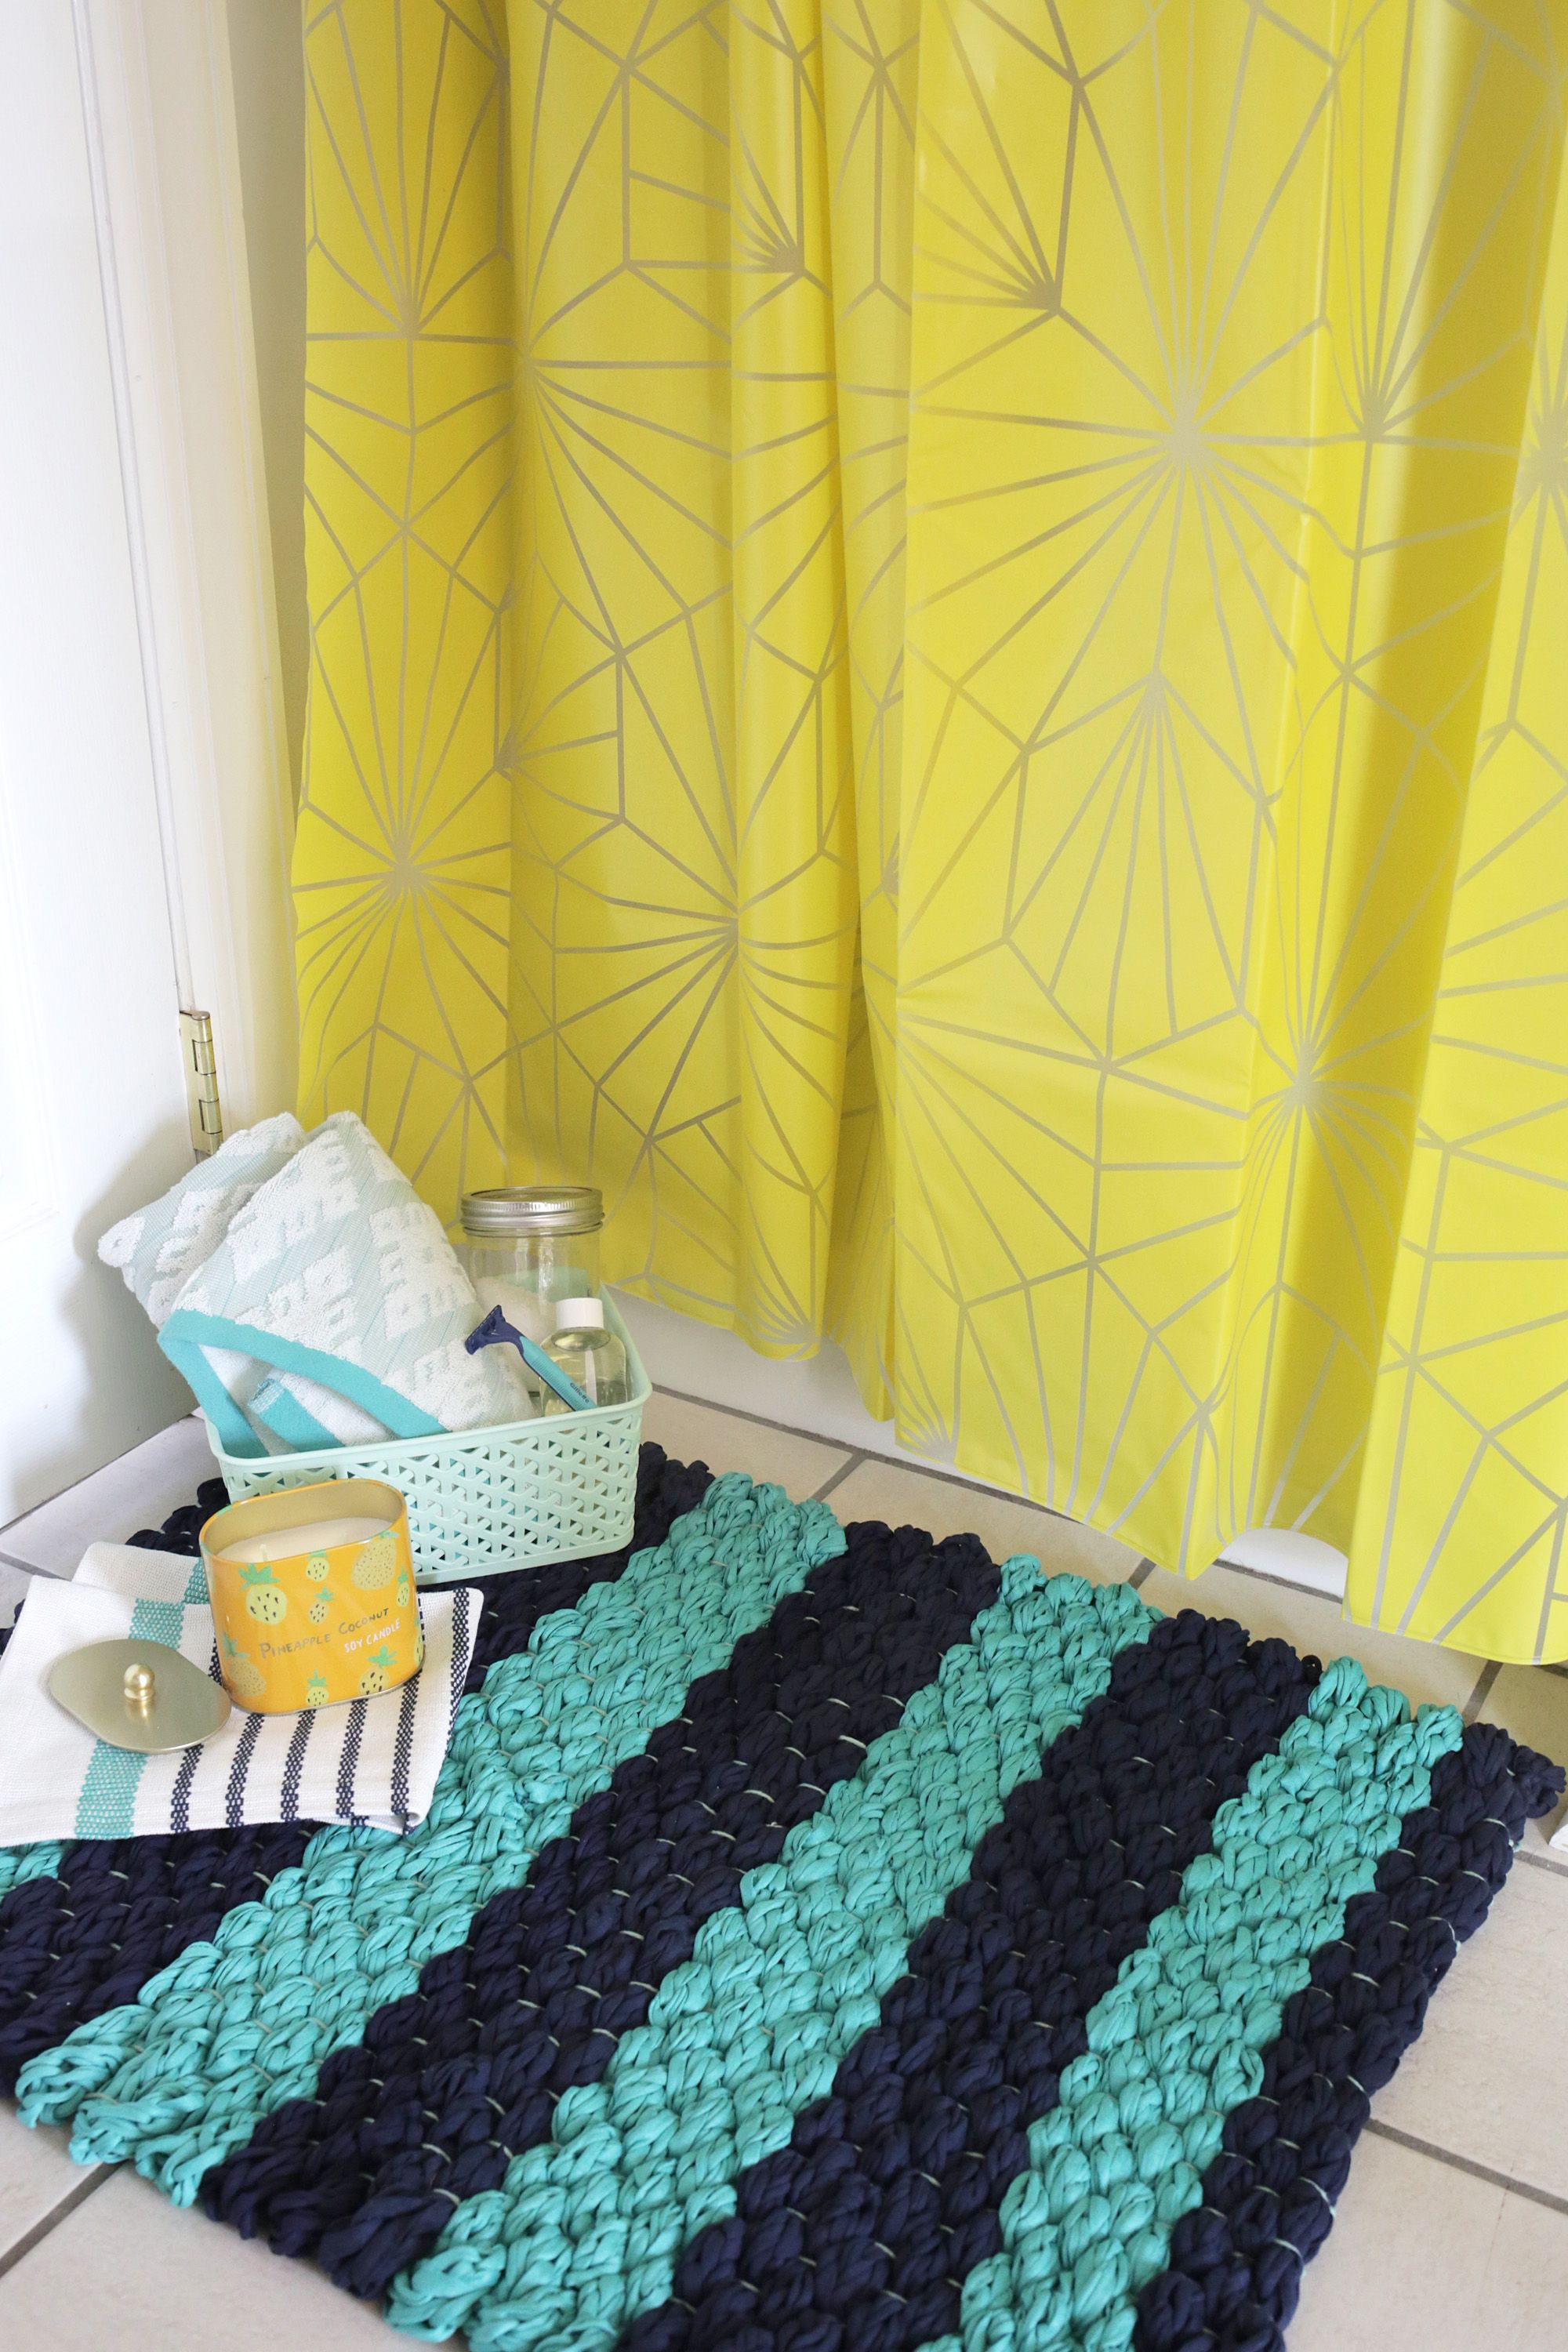 How To Make An Eco Friendly Bath Mat With Images Diy Bath